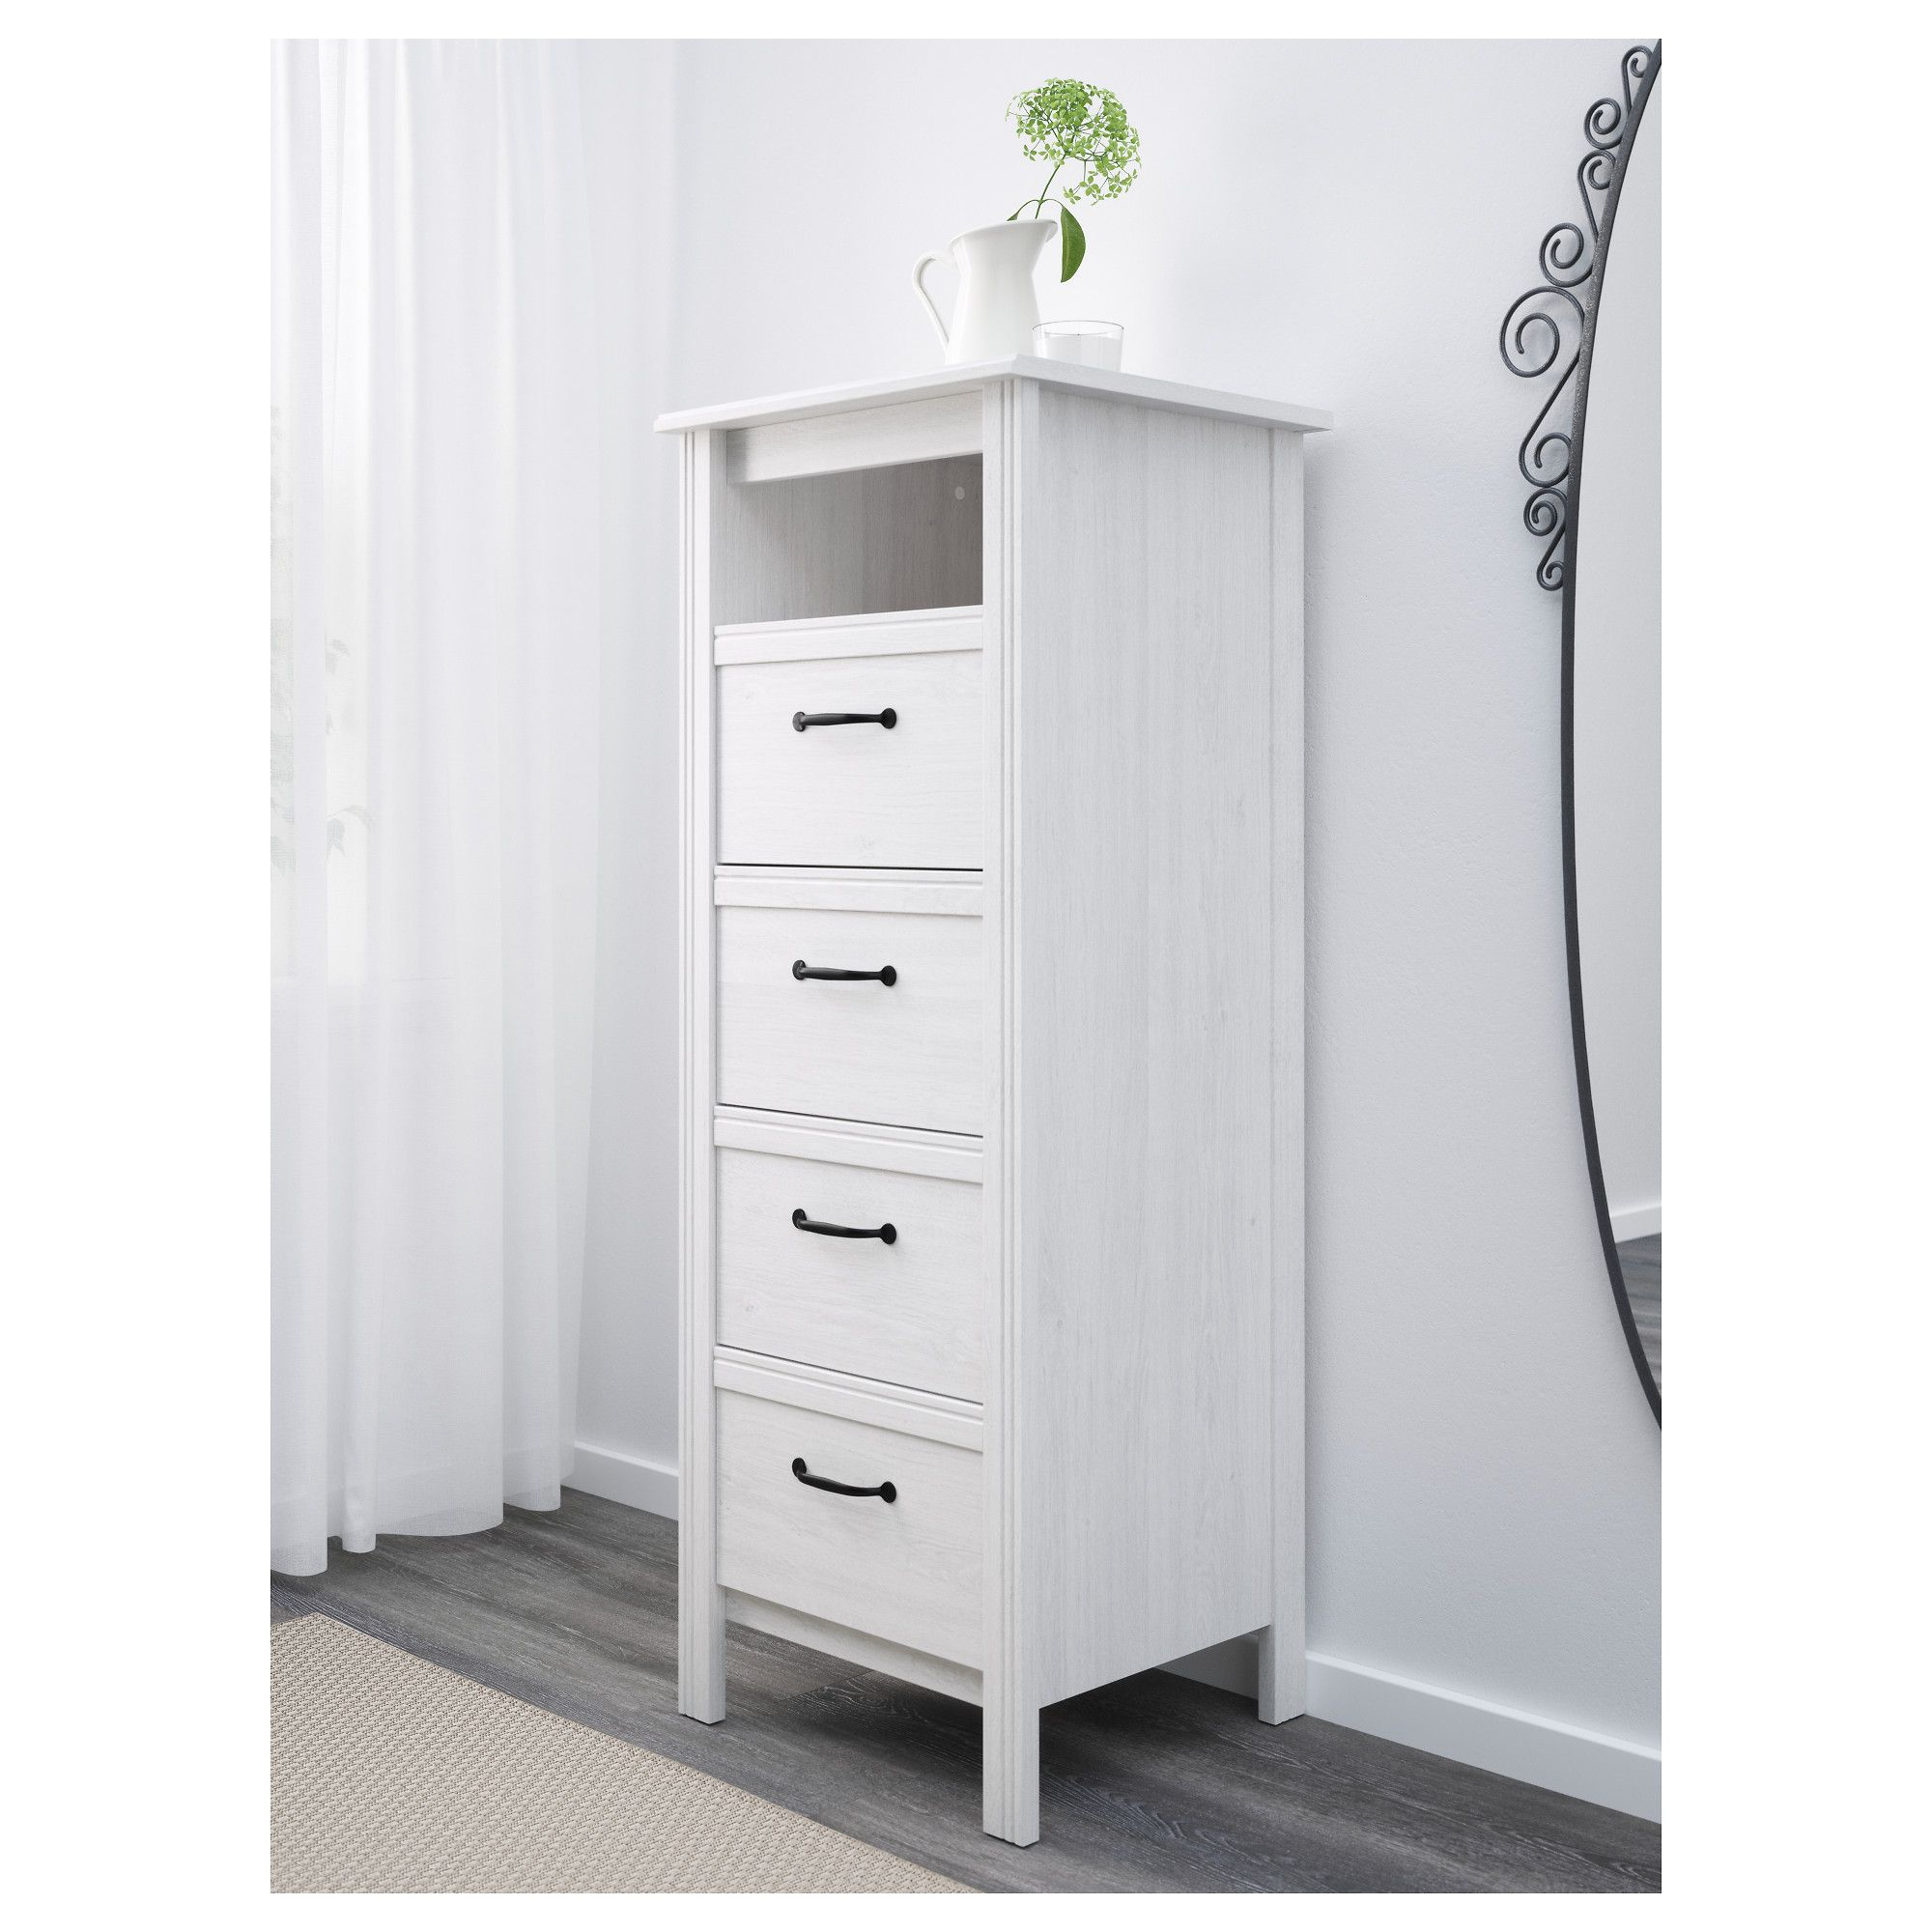 Brusali Hochschrank Ikea Brusali 4 Drawer Chest White Products Pinterest Ikea